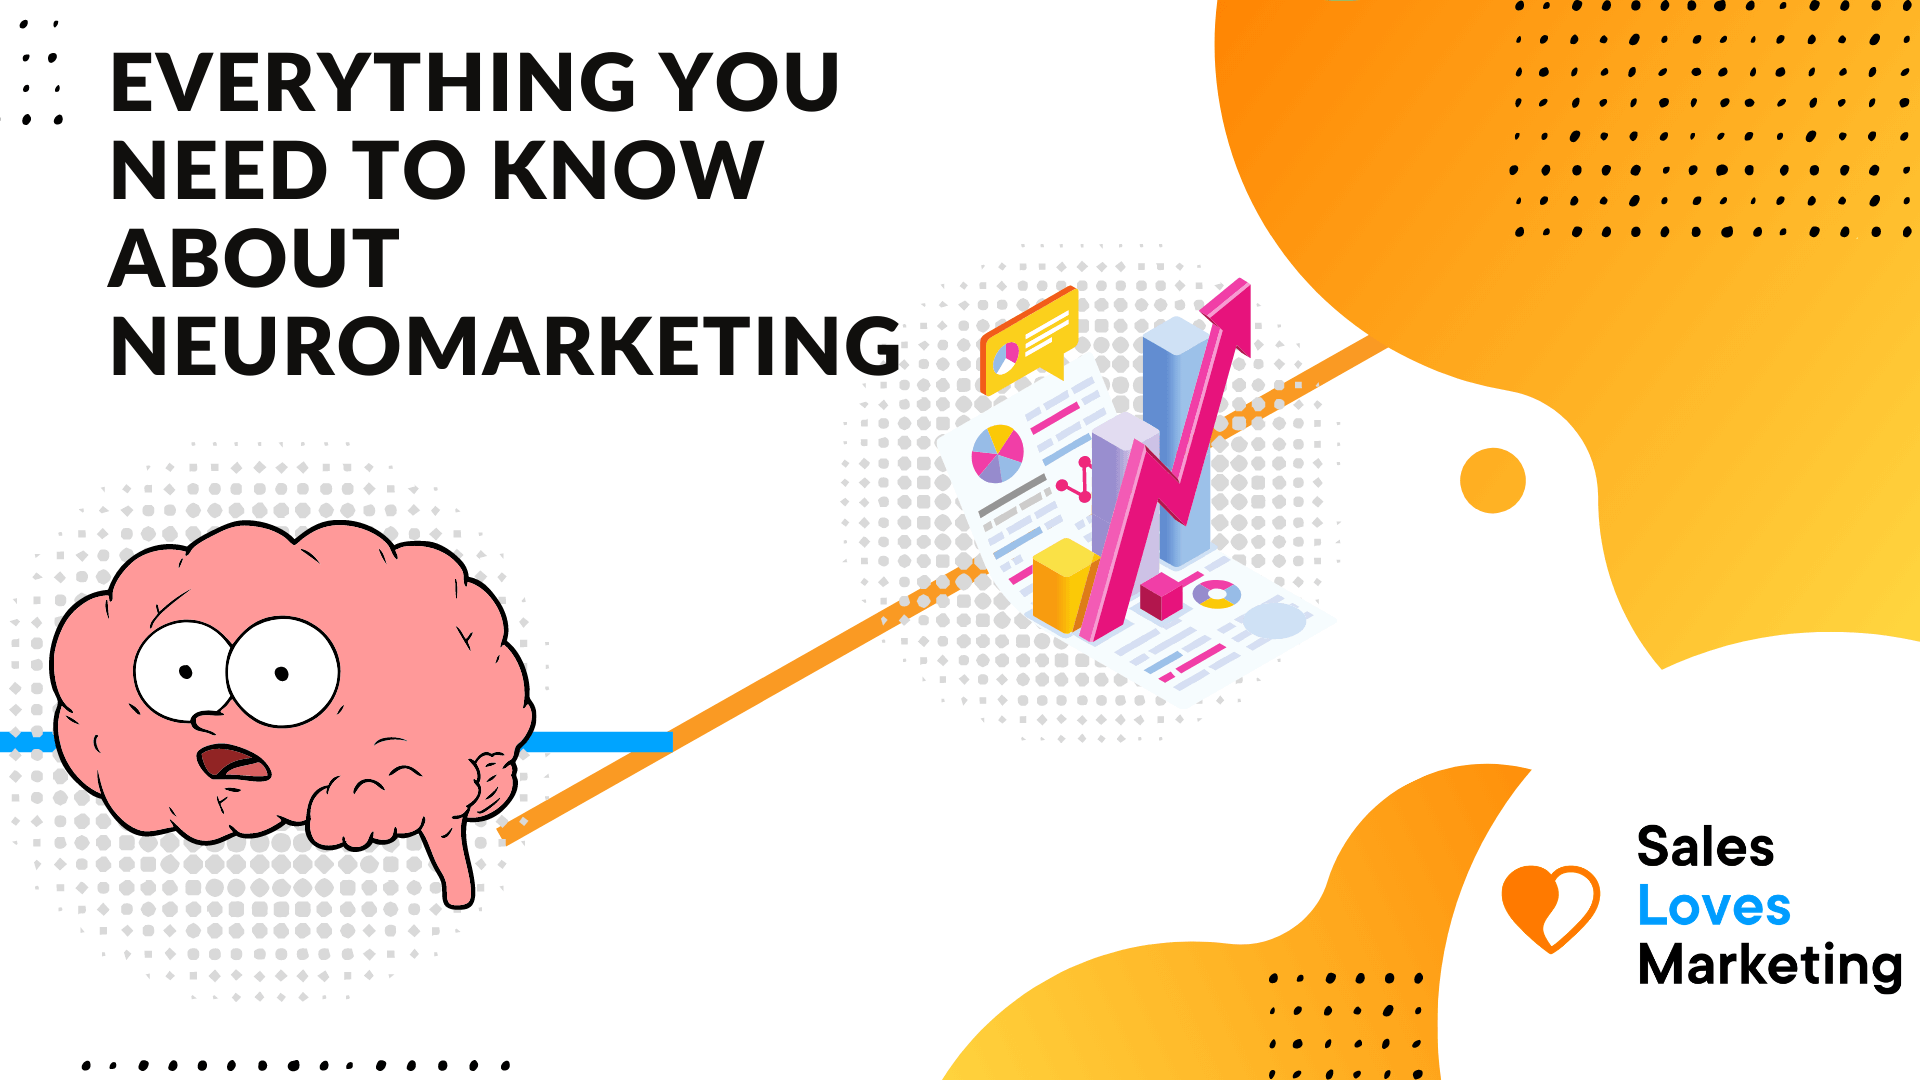 everything you need to know about the hidden science of marketing; neuromarketing.